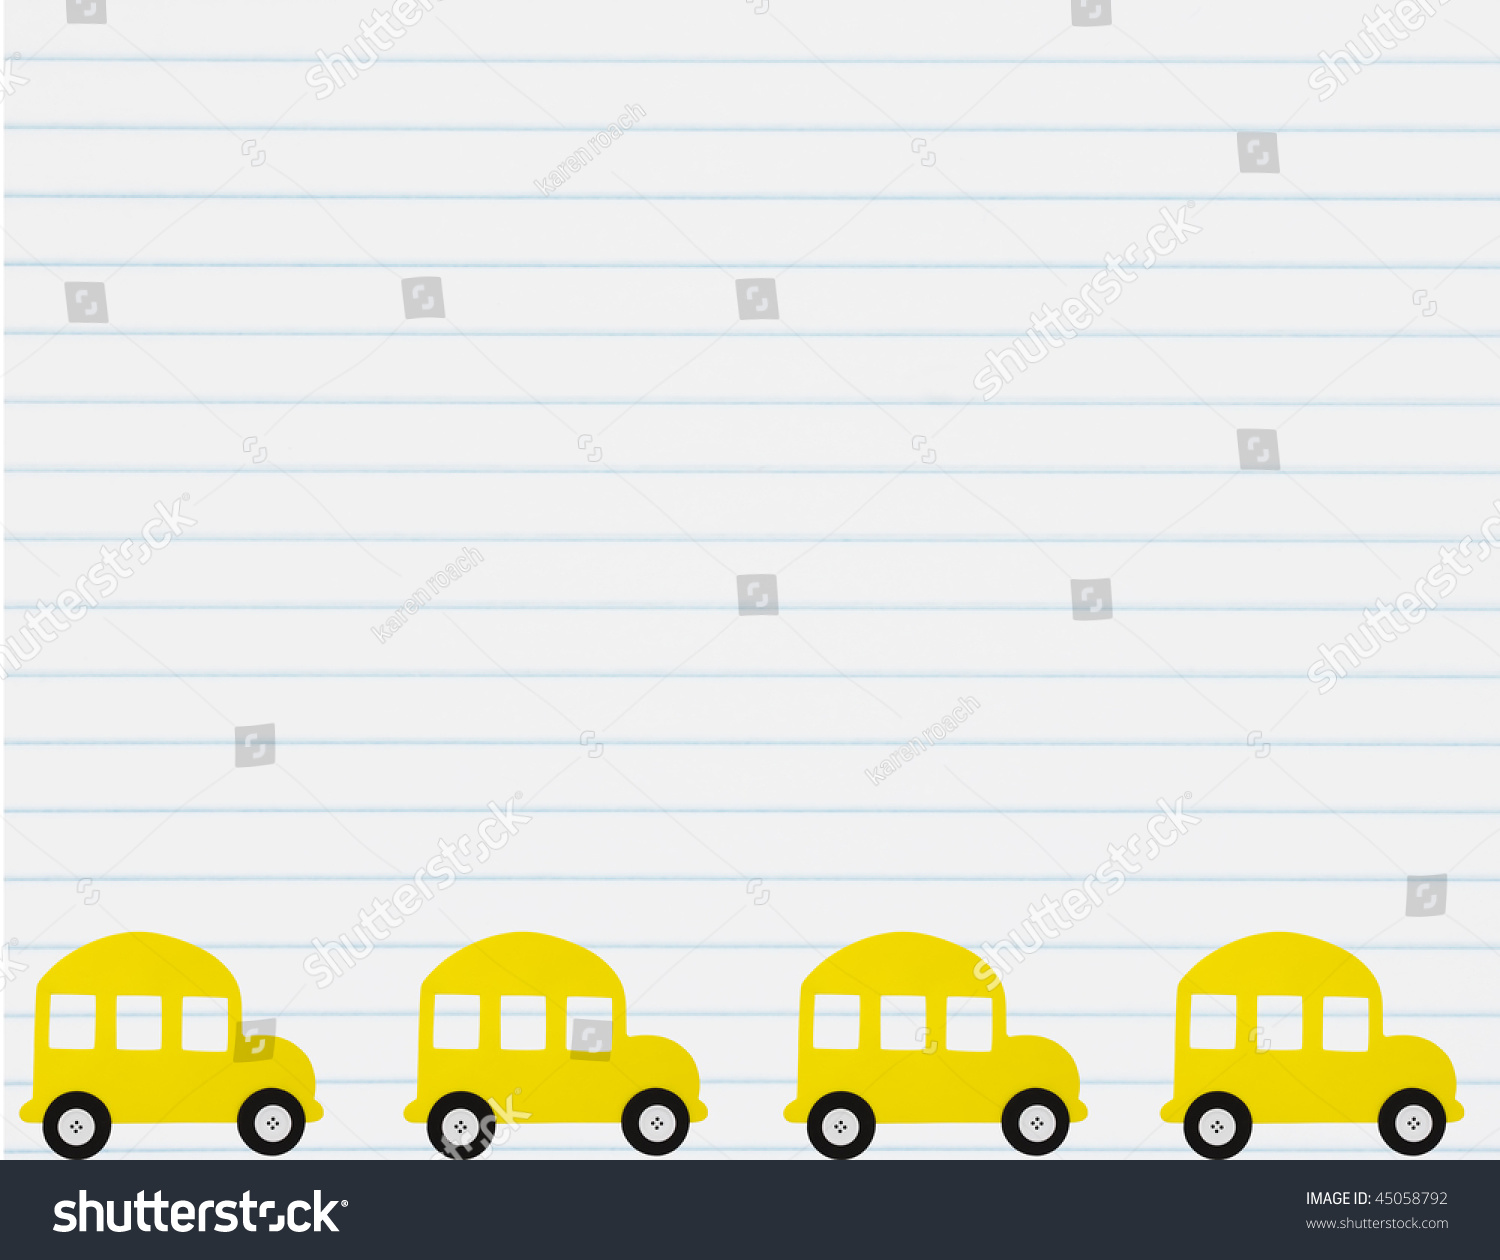 School Bus Border With A Lined Paper Background, School Bus Stock